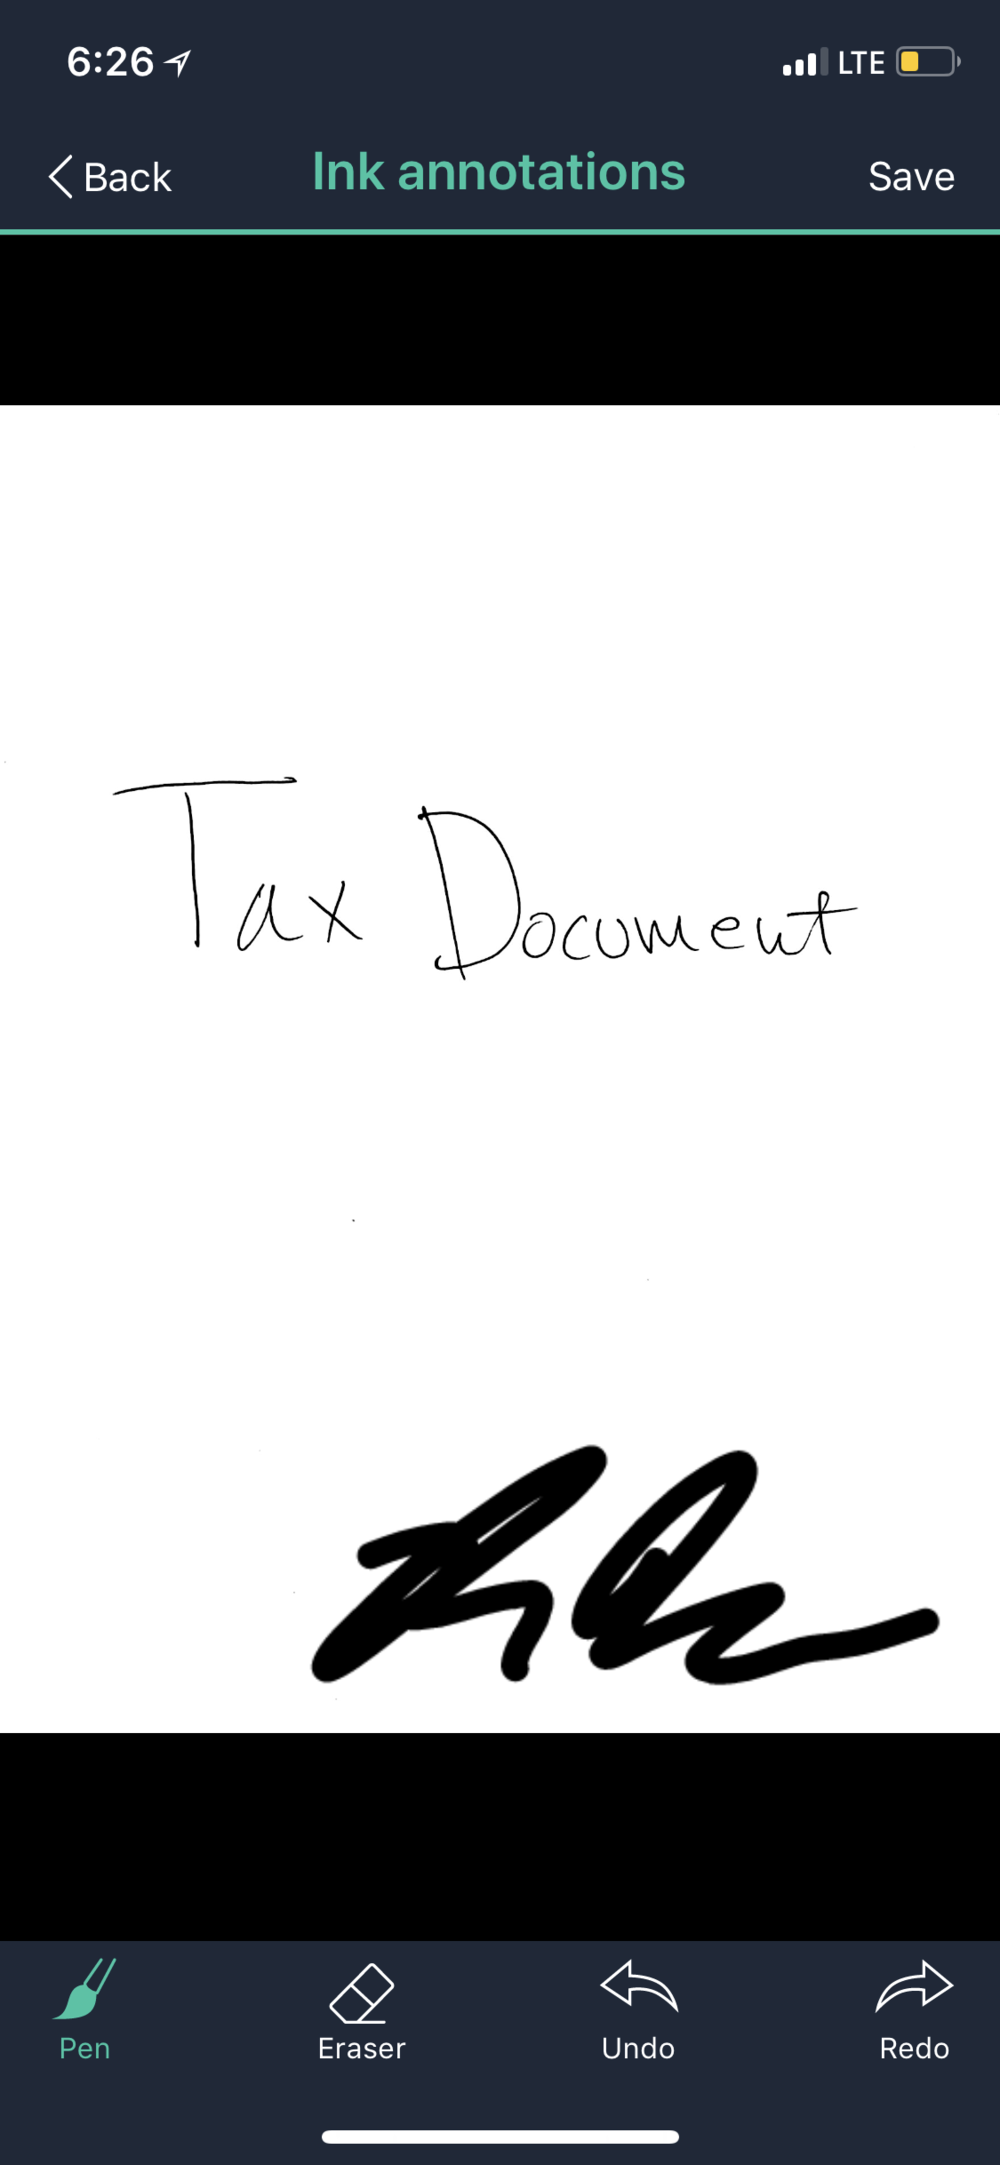 An example of the CamScanner app with a signature added.